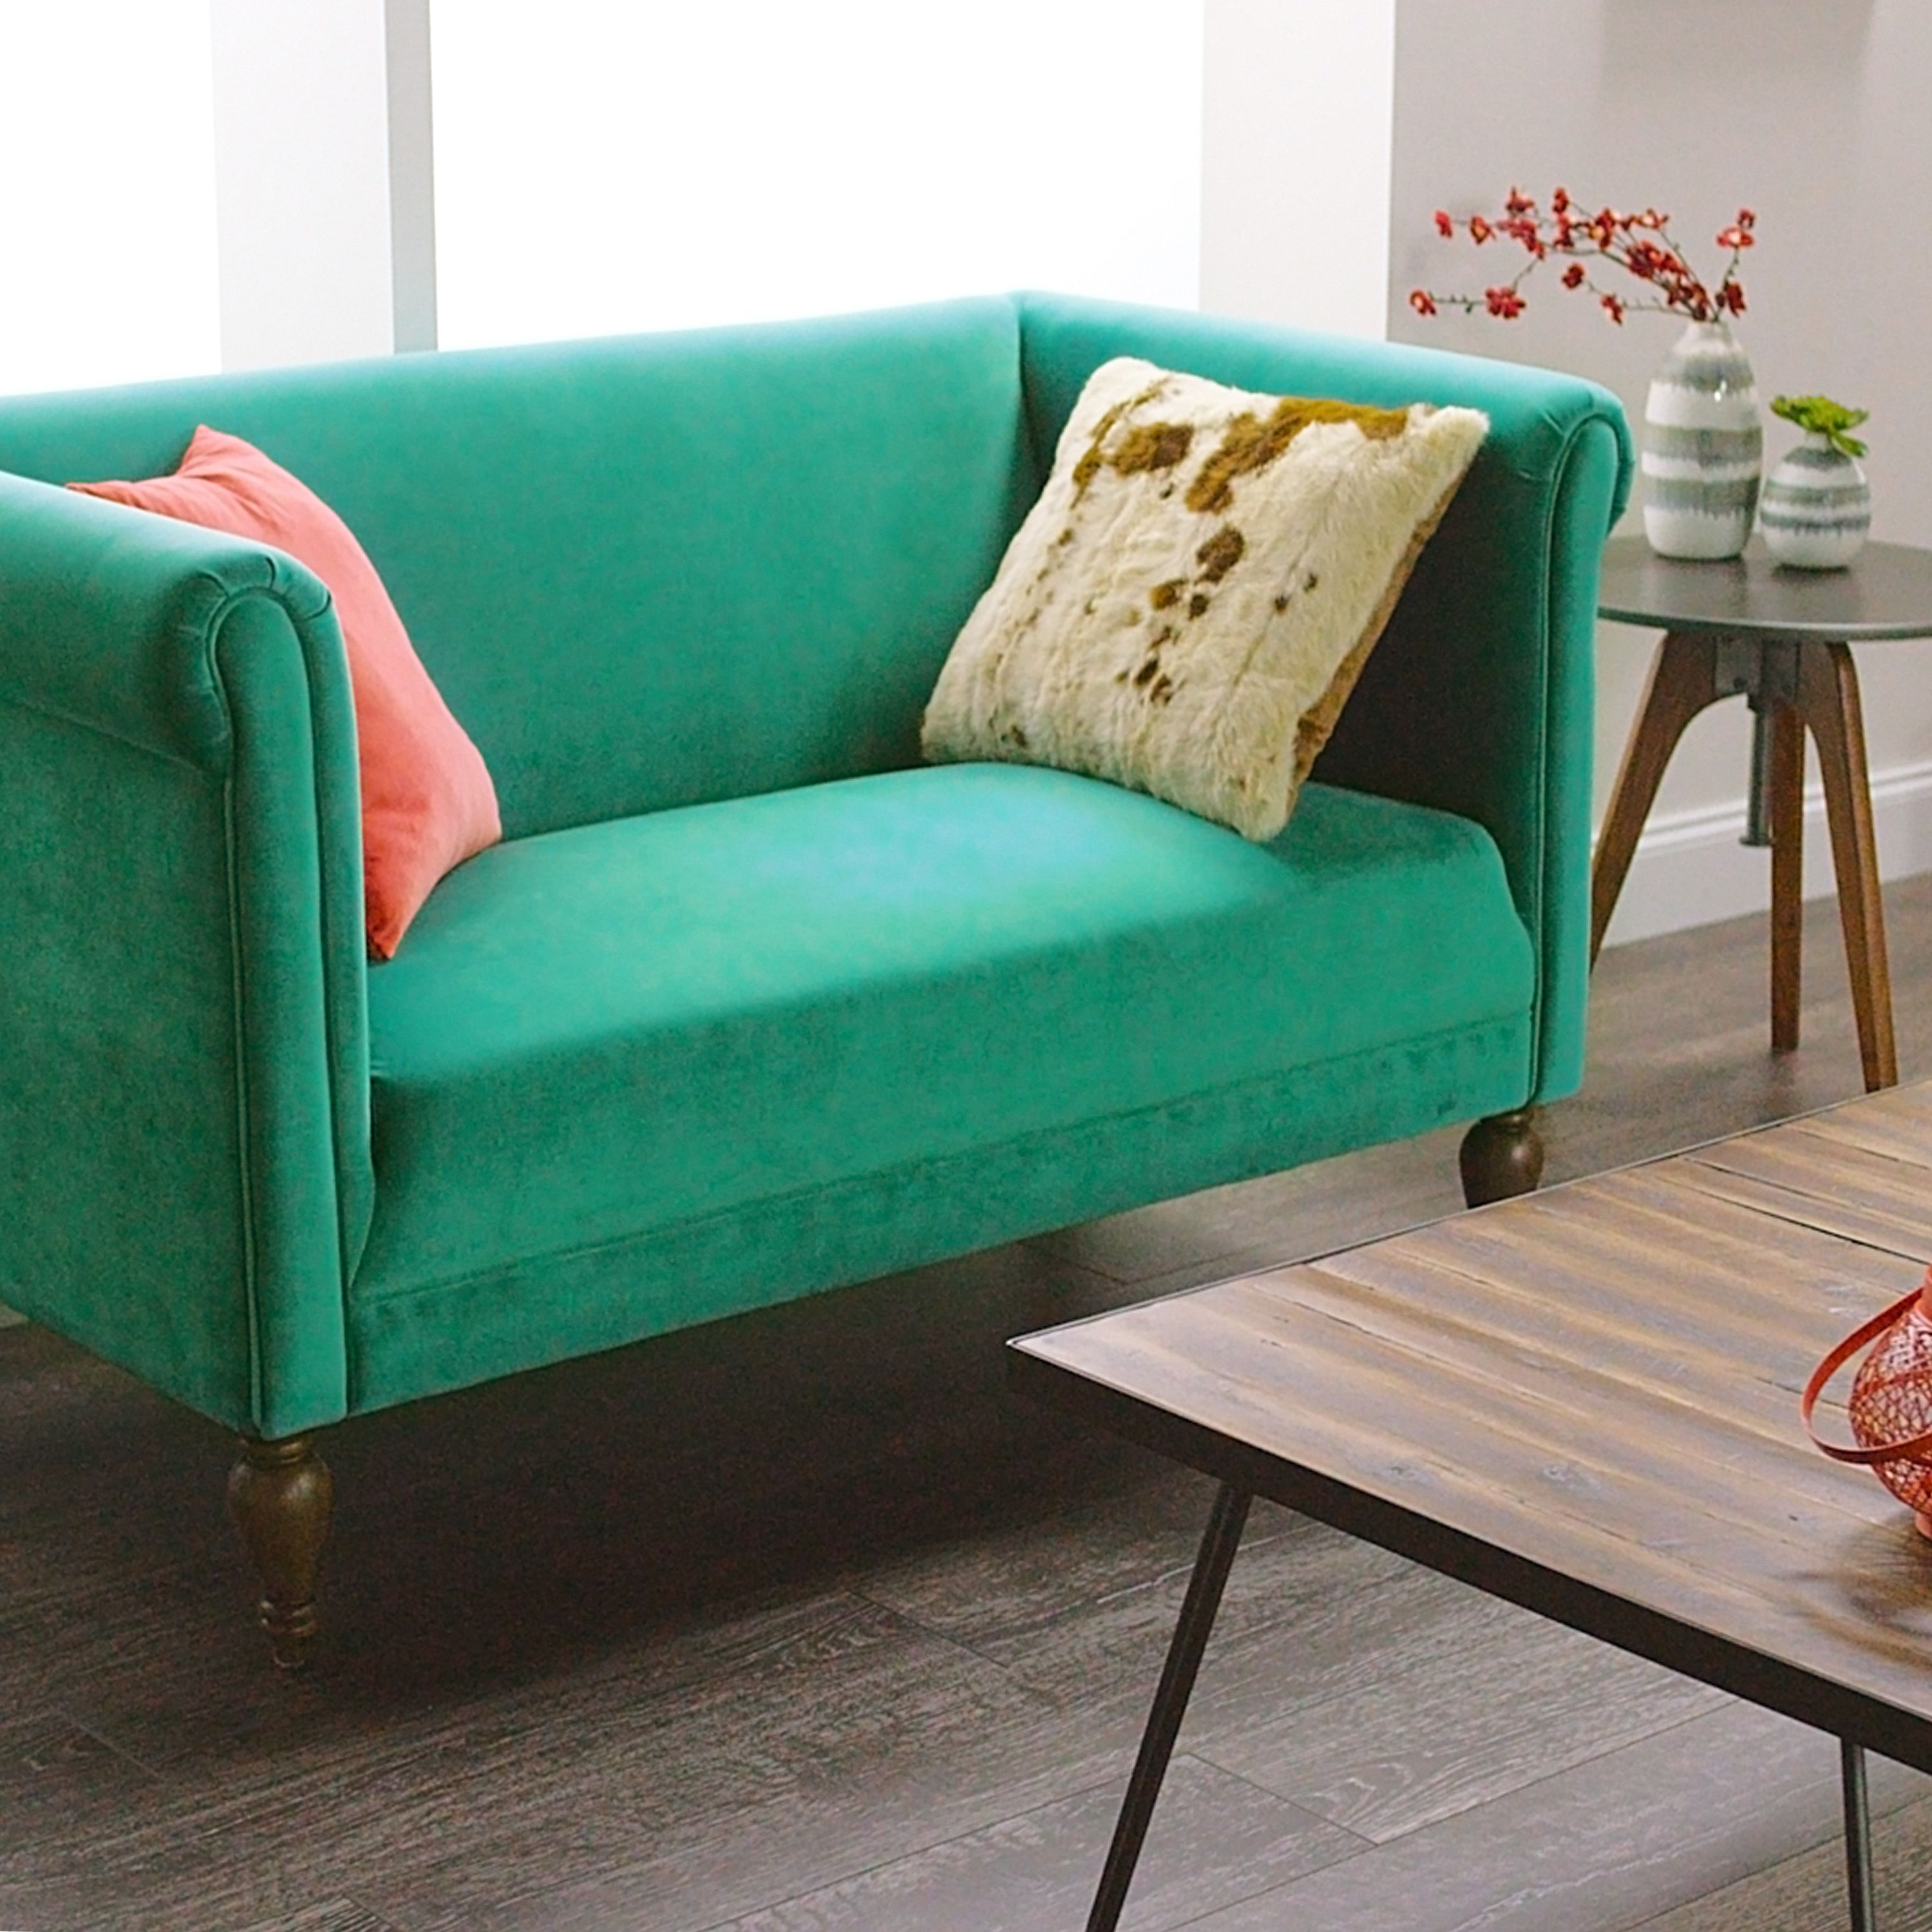 With Rolled Shelter Arms And Sumptuous Bright Green Velvet Upholstery, Itu0026  A Fresh Take On A Cozy Classic.